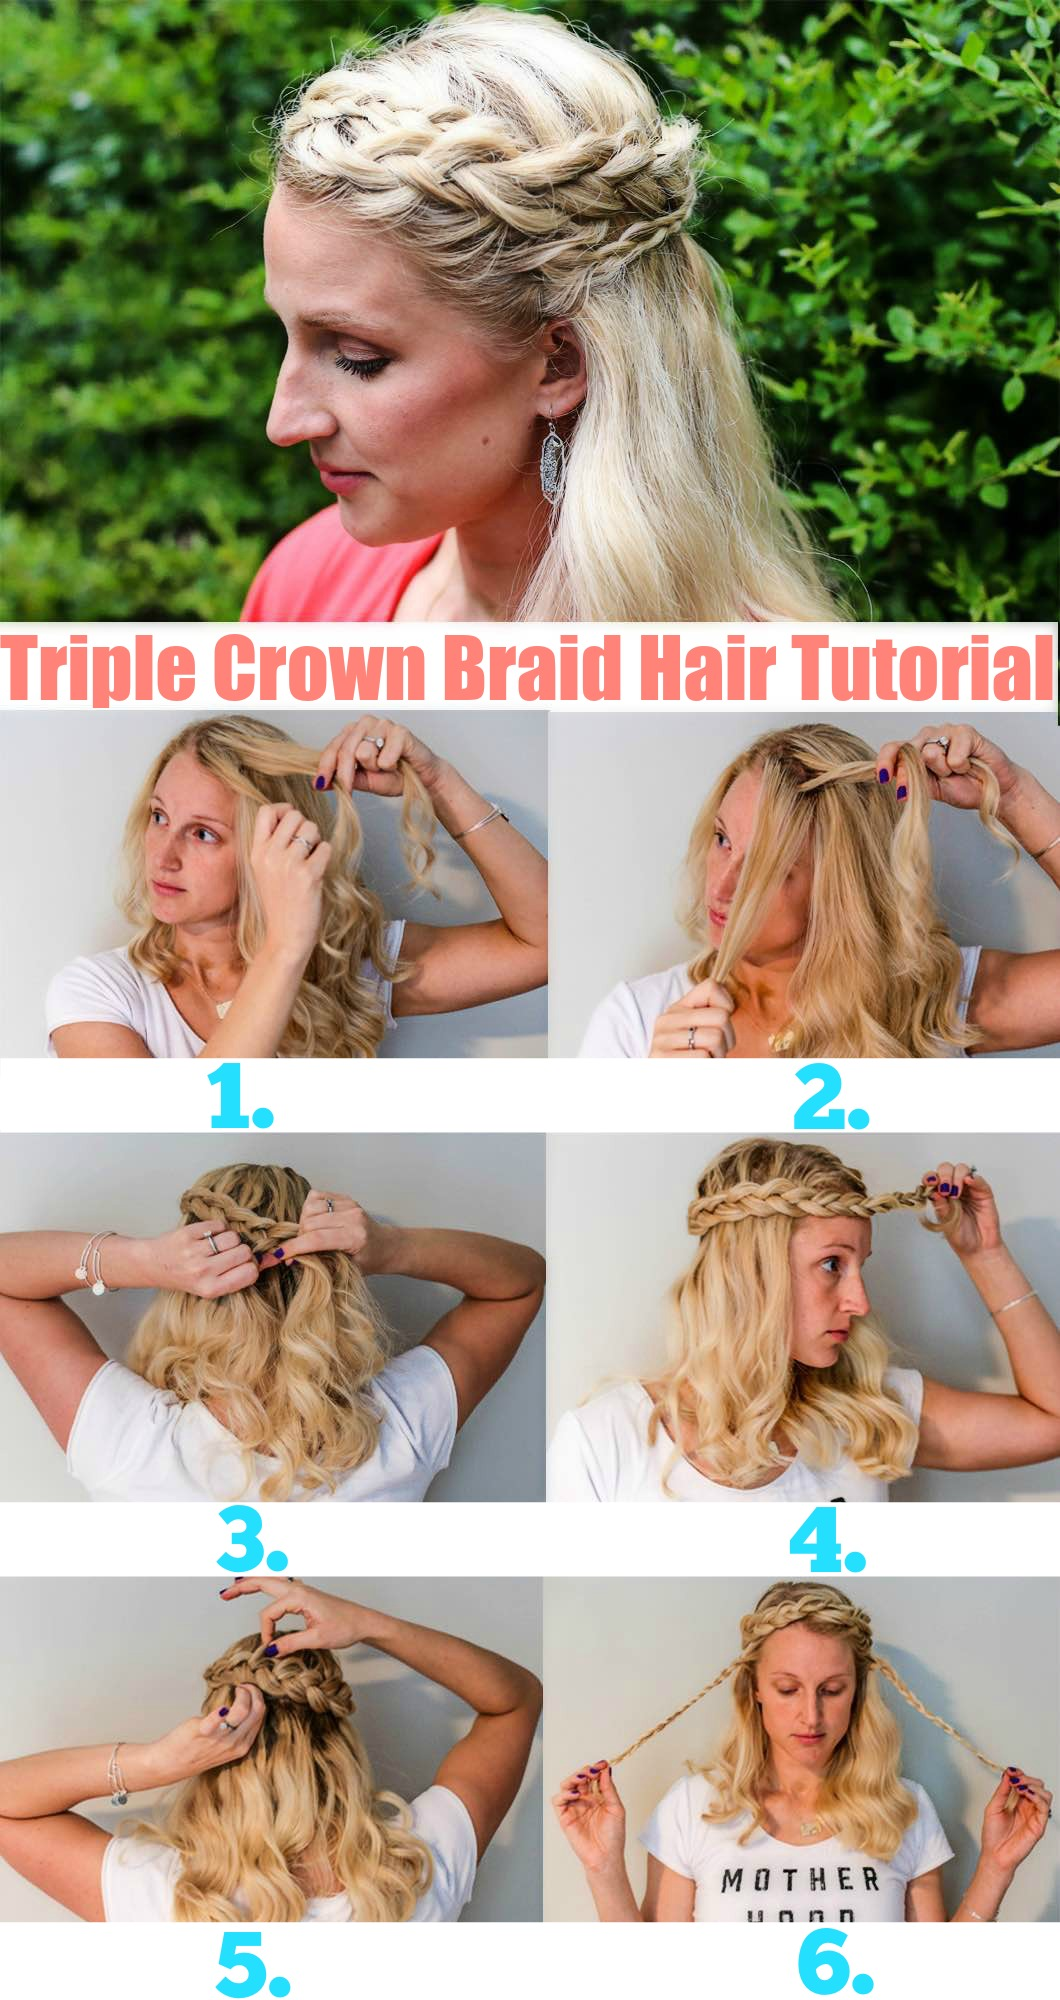 Triple Crown Braid Tutorial